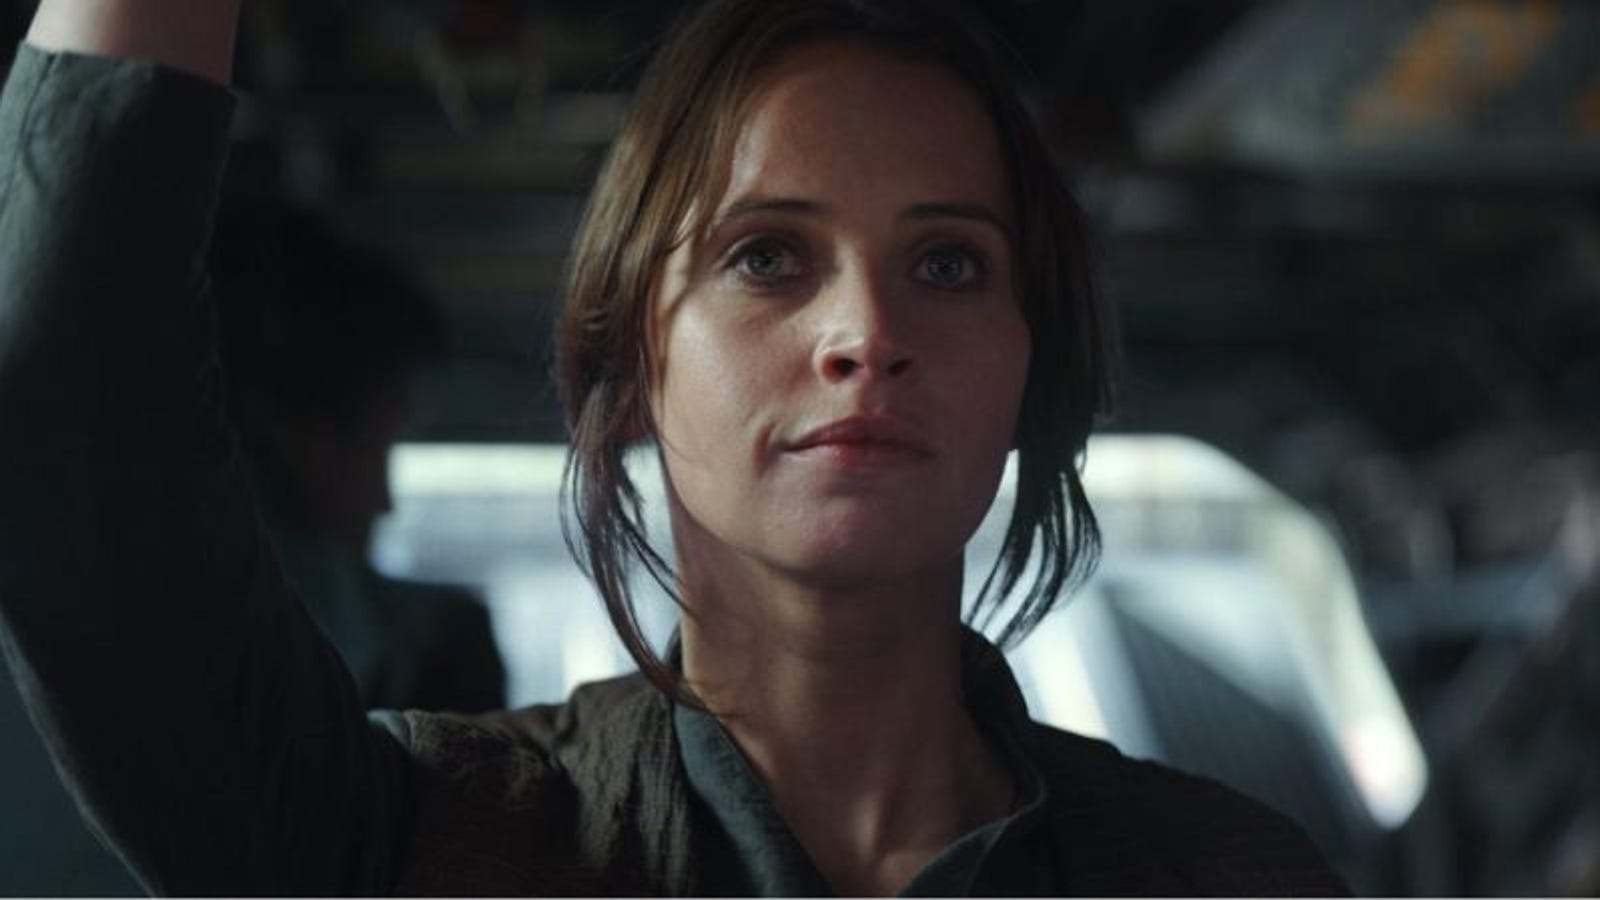 Impressive Supercut Puts Rogue One Trailers in Chronological Order